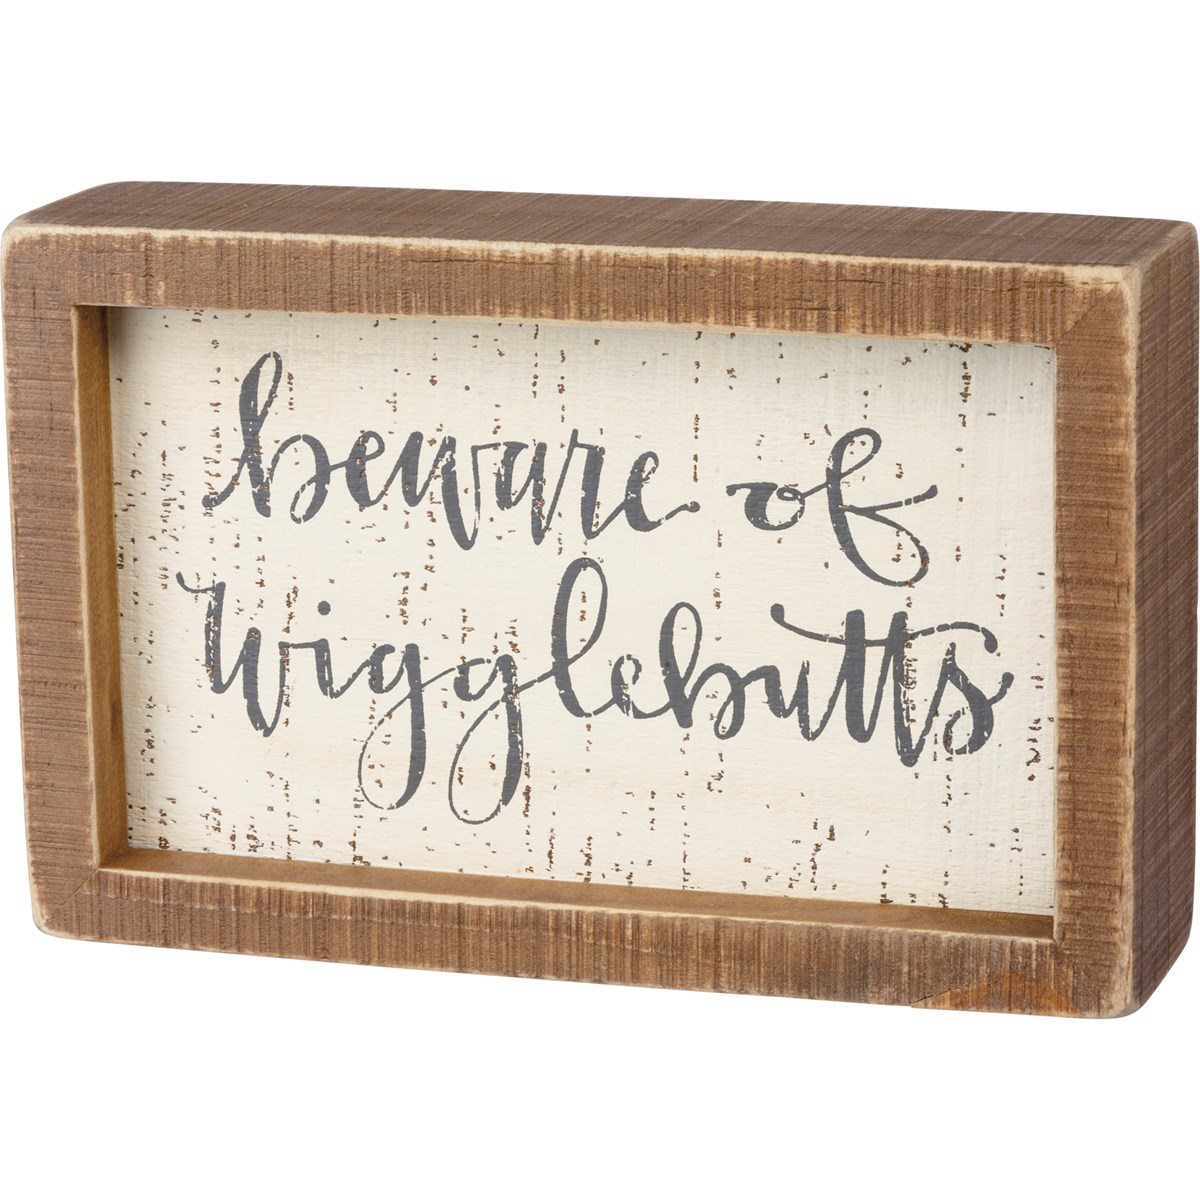 "Inset Box Sign - Beware Of Wigglebutts - 7"" x 4.50"" x 1.75"" - Wood"